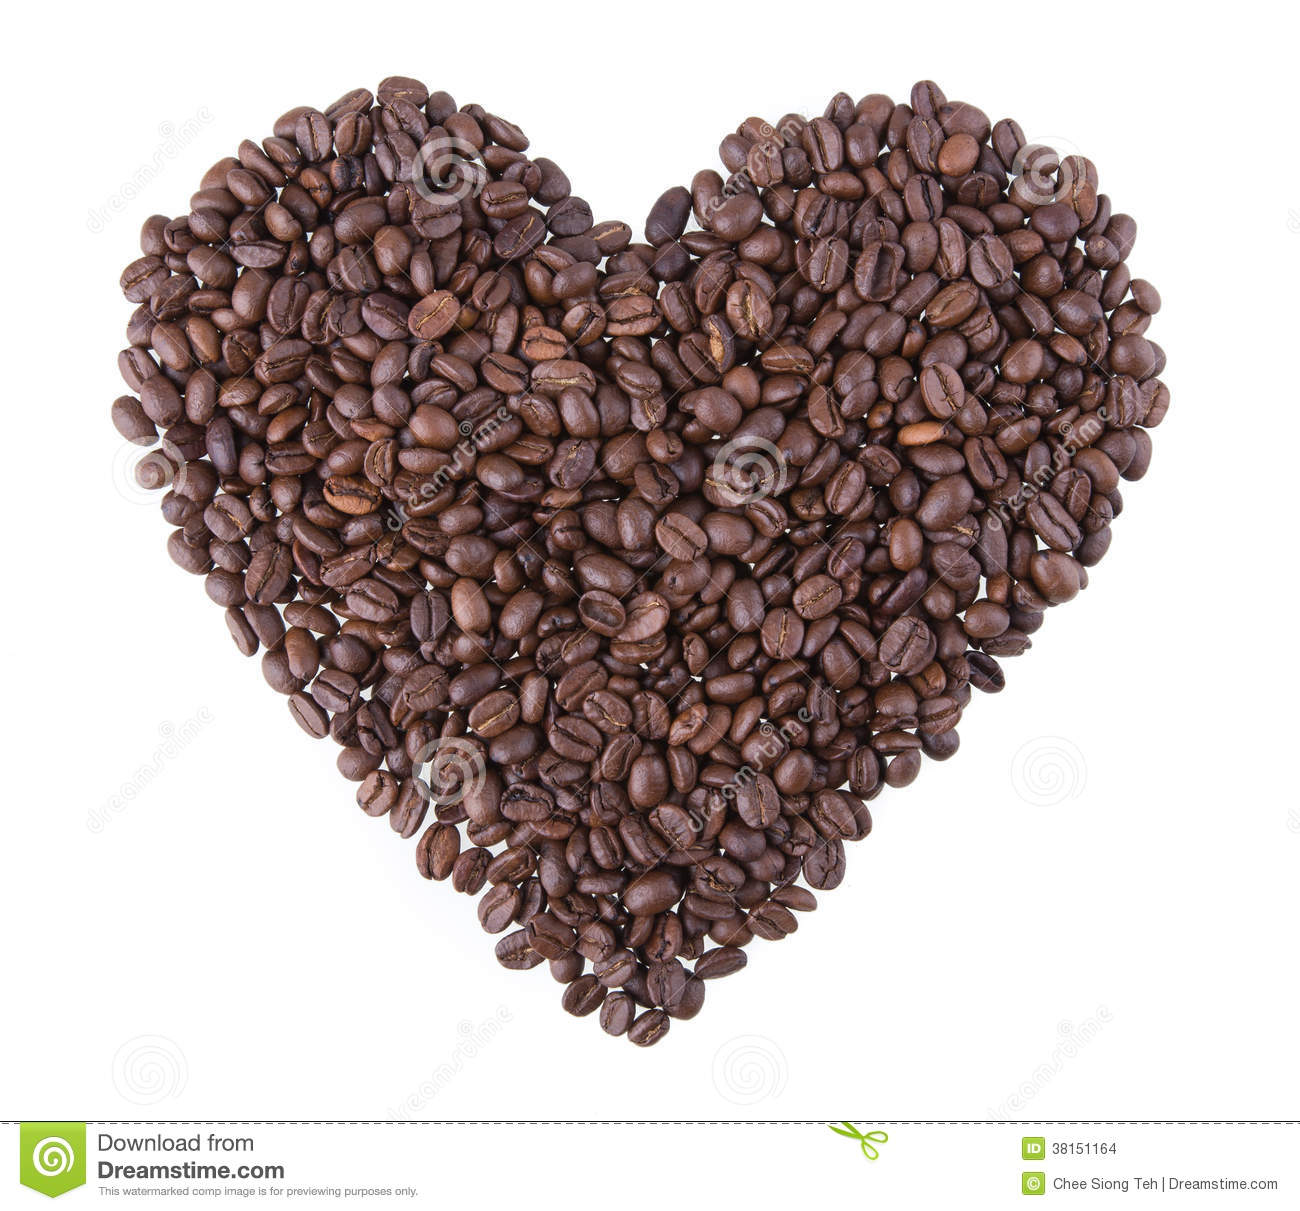 Coffee Beans stock photo. Image of coffe, clean, environment